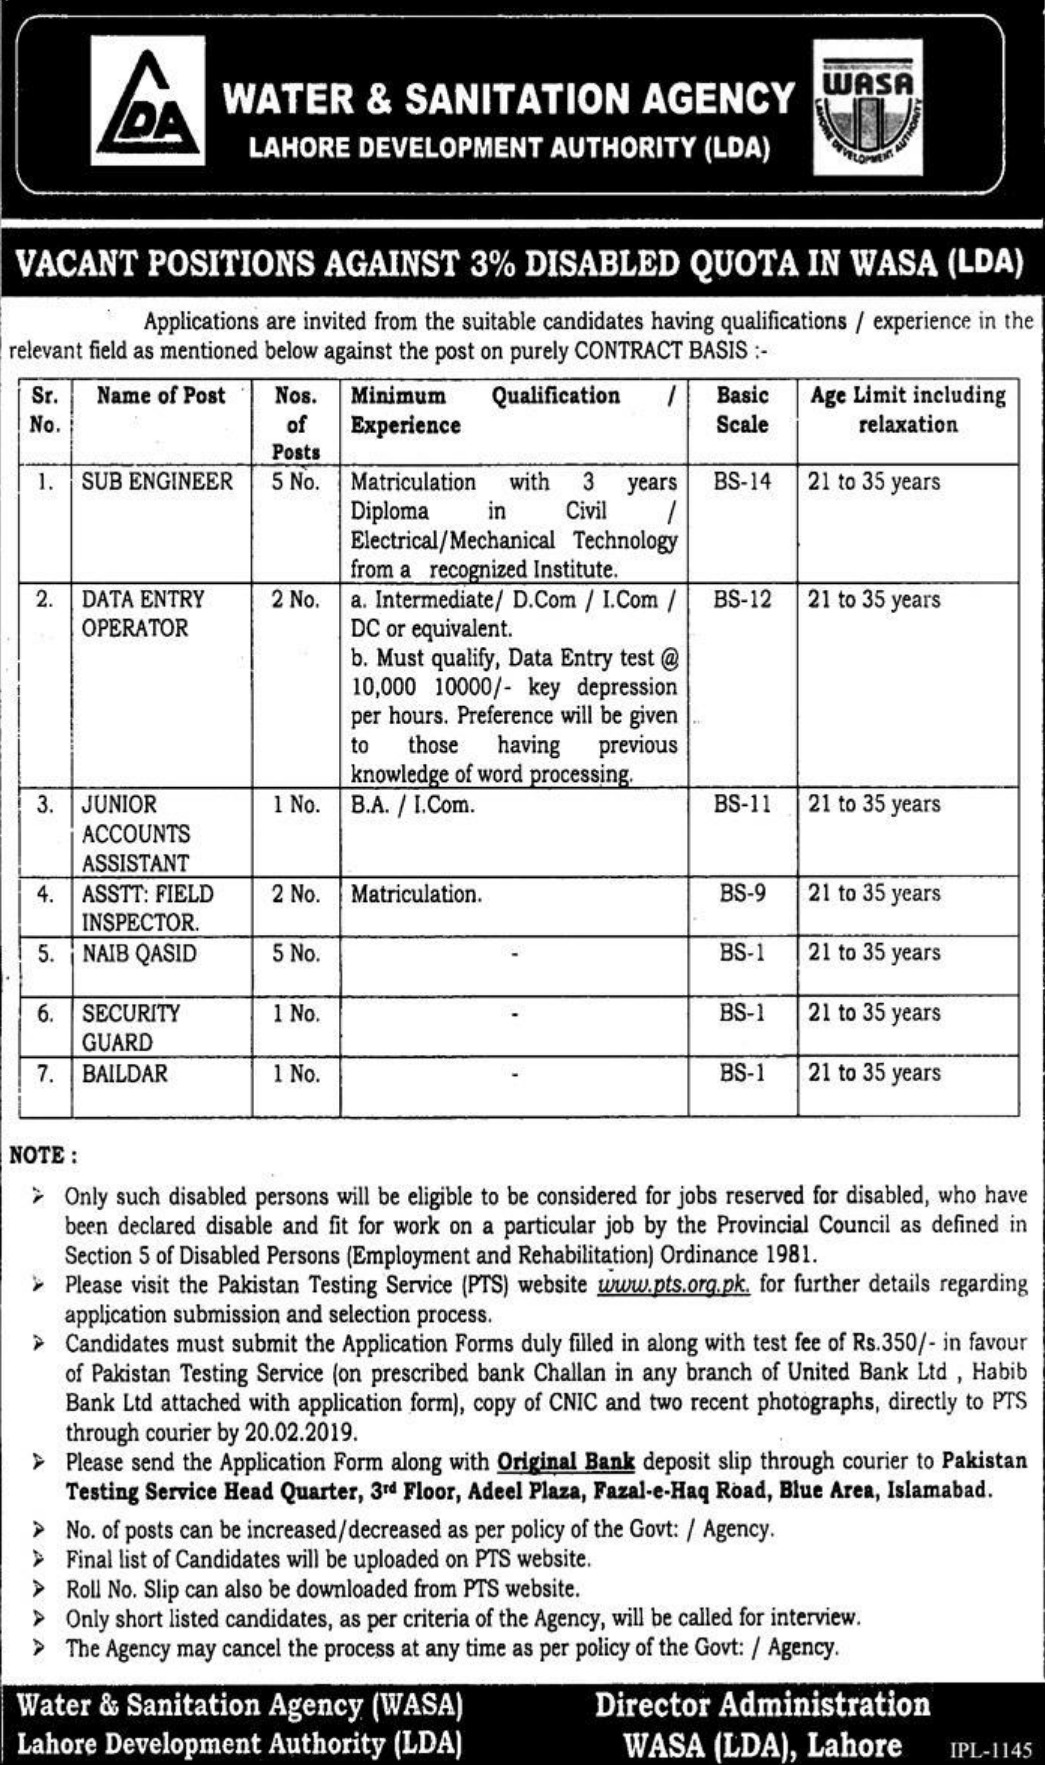 WASA LDA Jobs 2019 Water & Sanitation Agency Lahore Development Authority